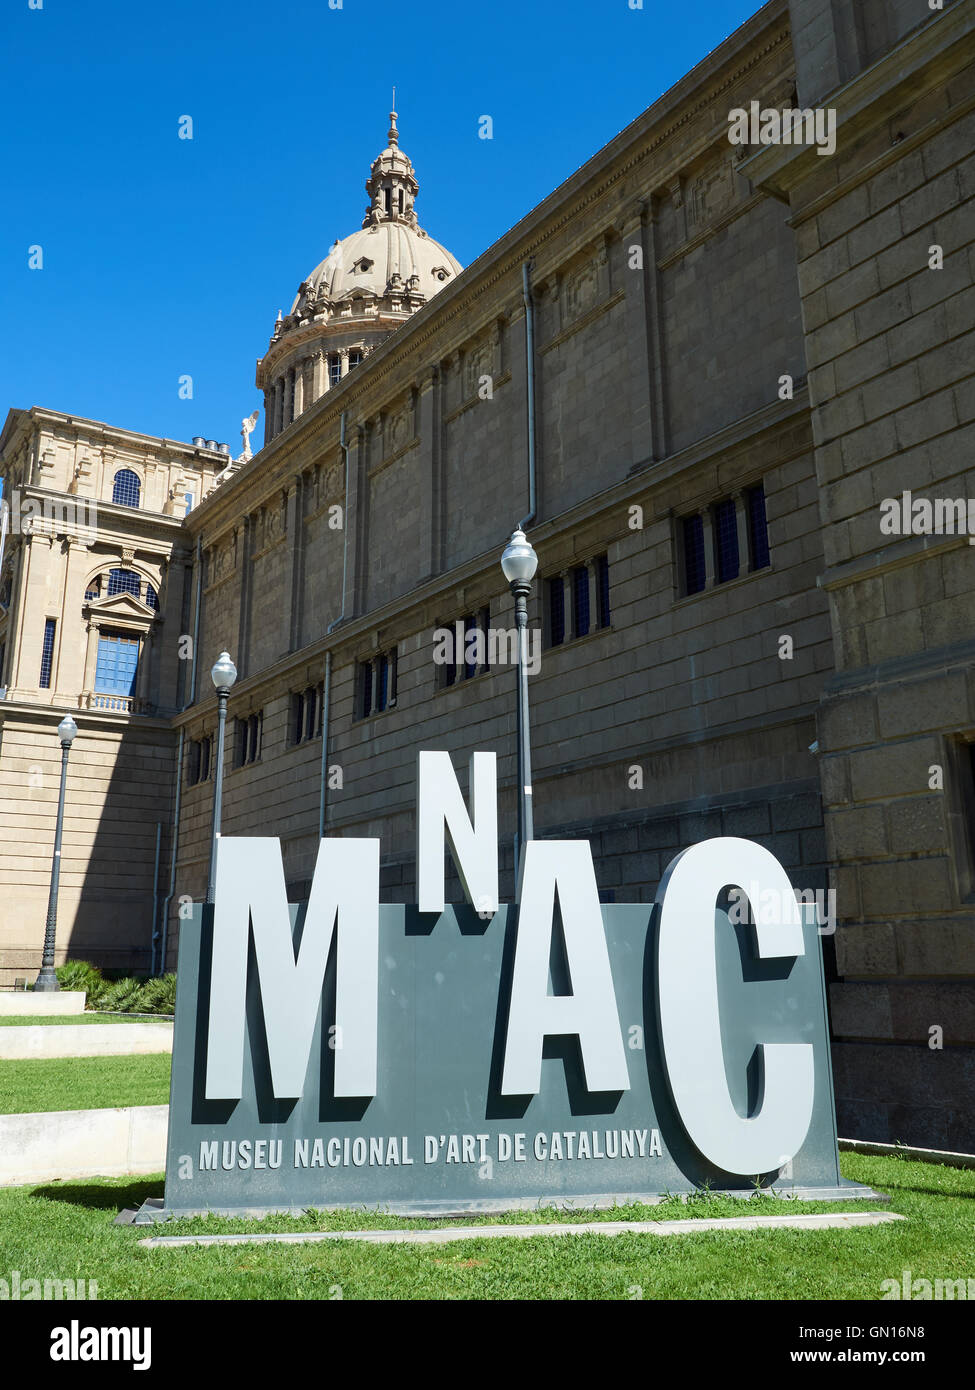 Detail of external views of MNAC Barcelona - Stock Image